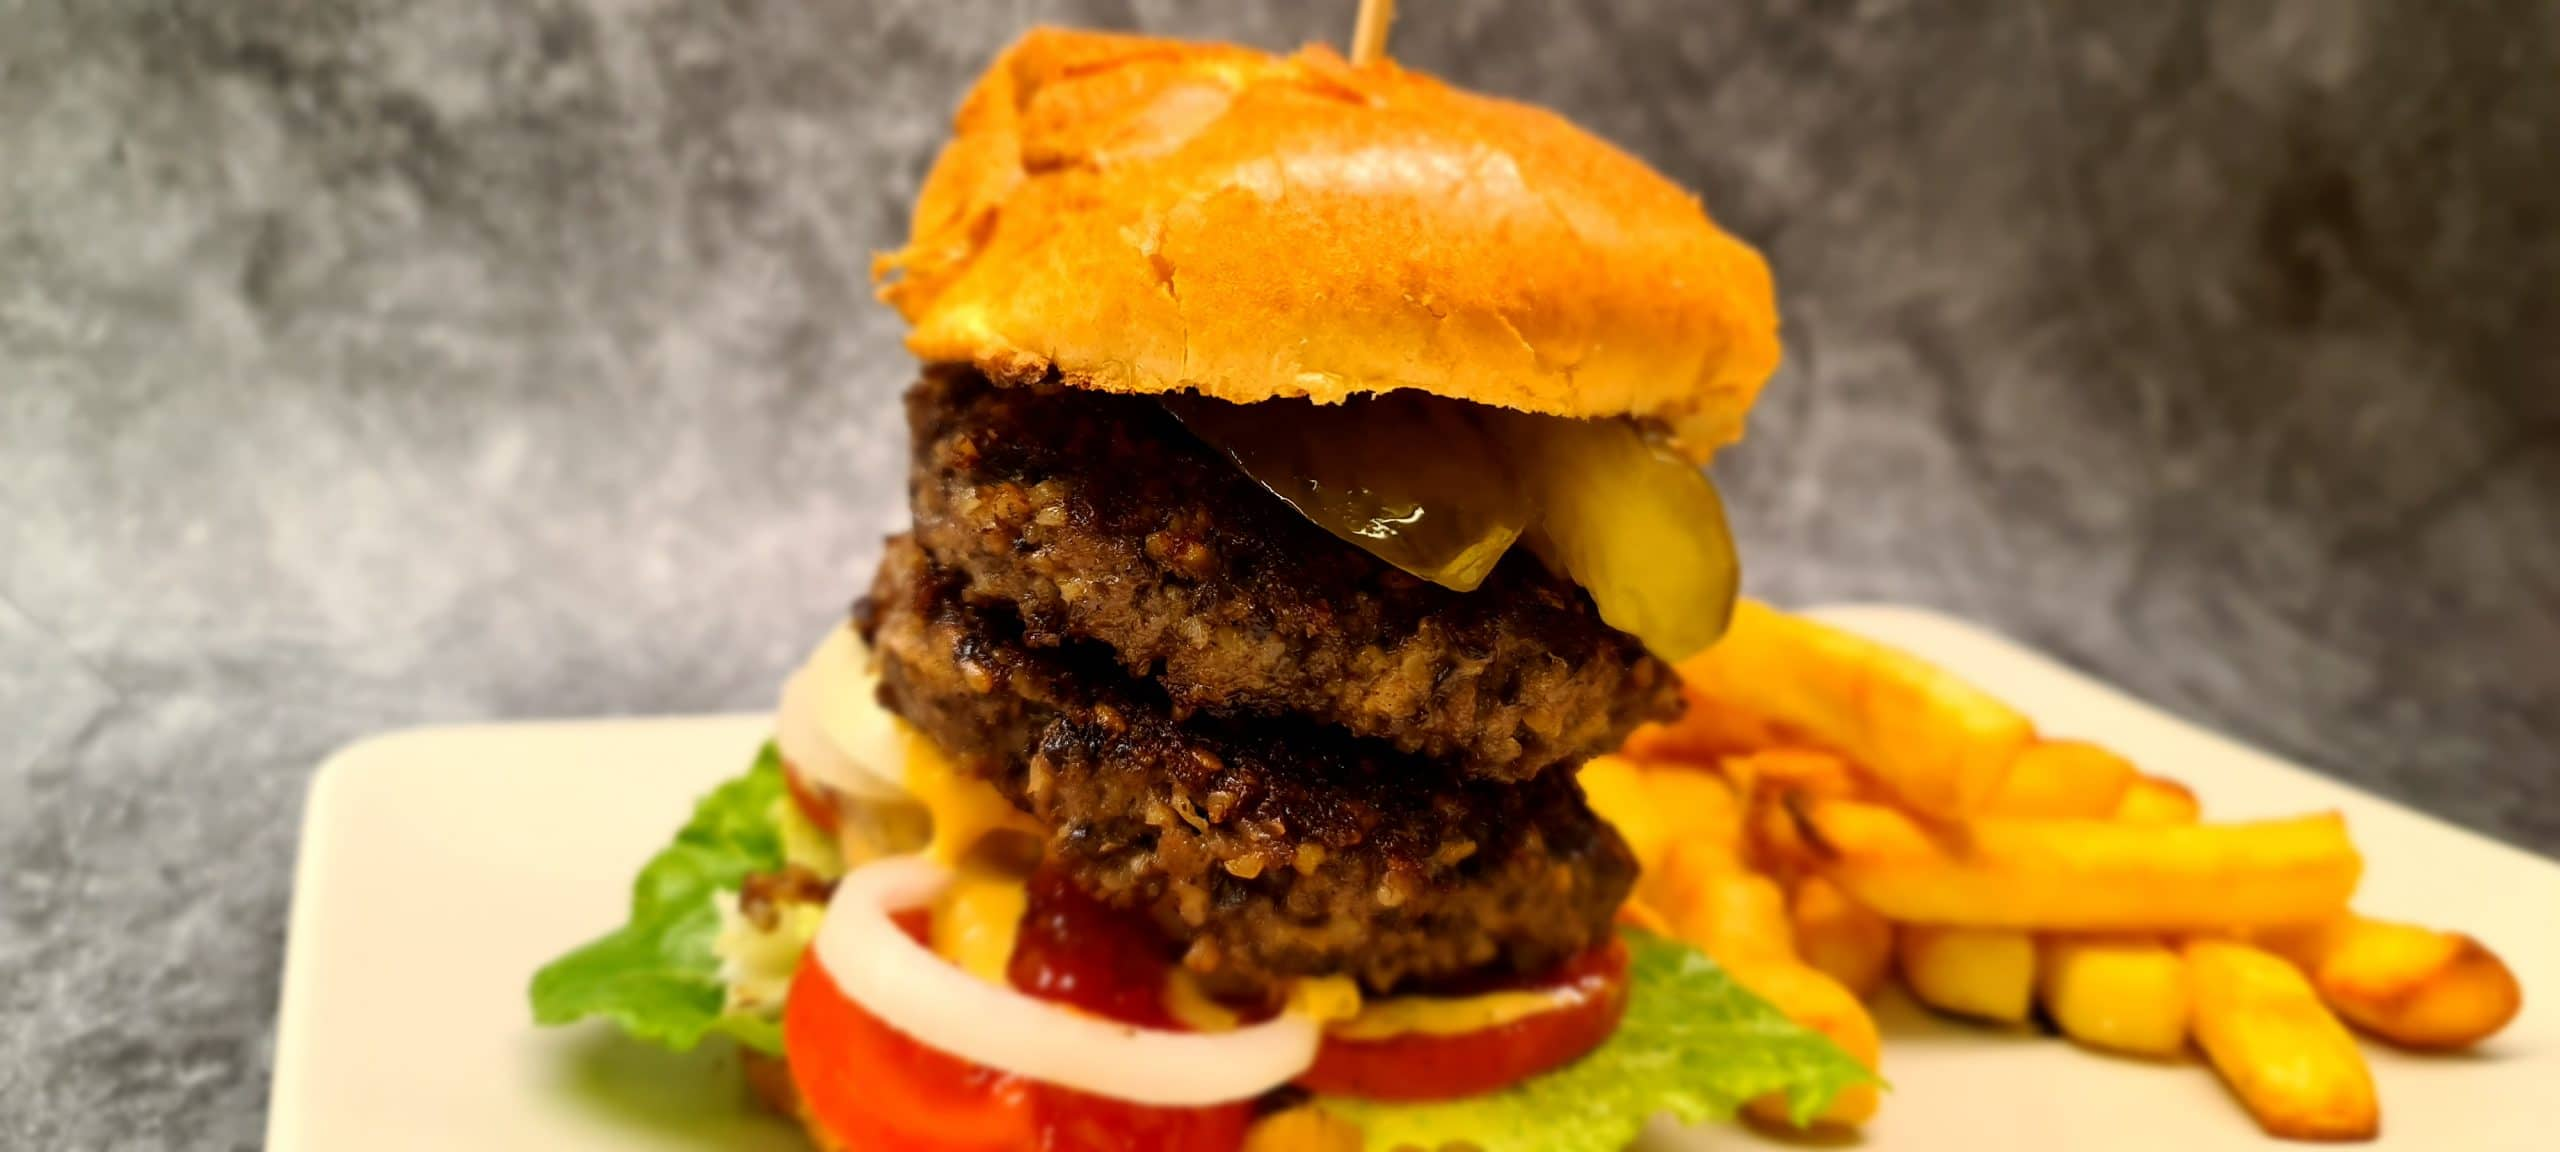 You are currently viewing Haggis and Beef Burger